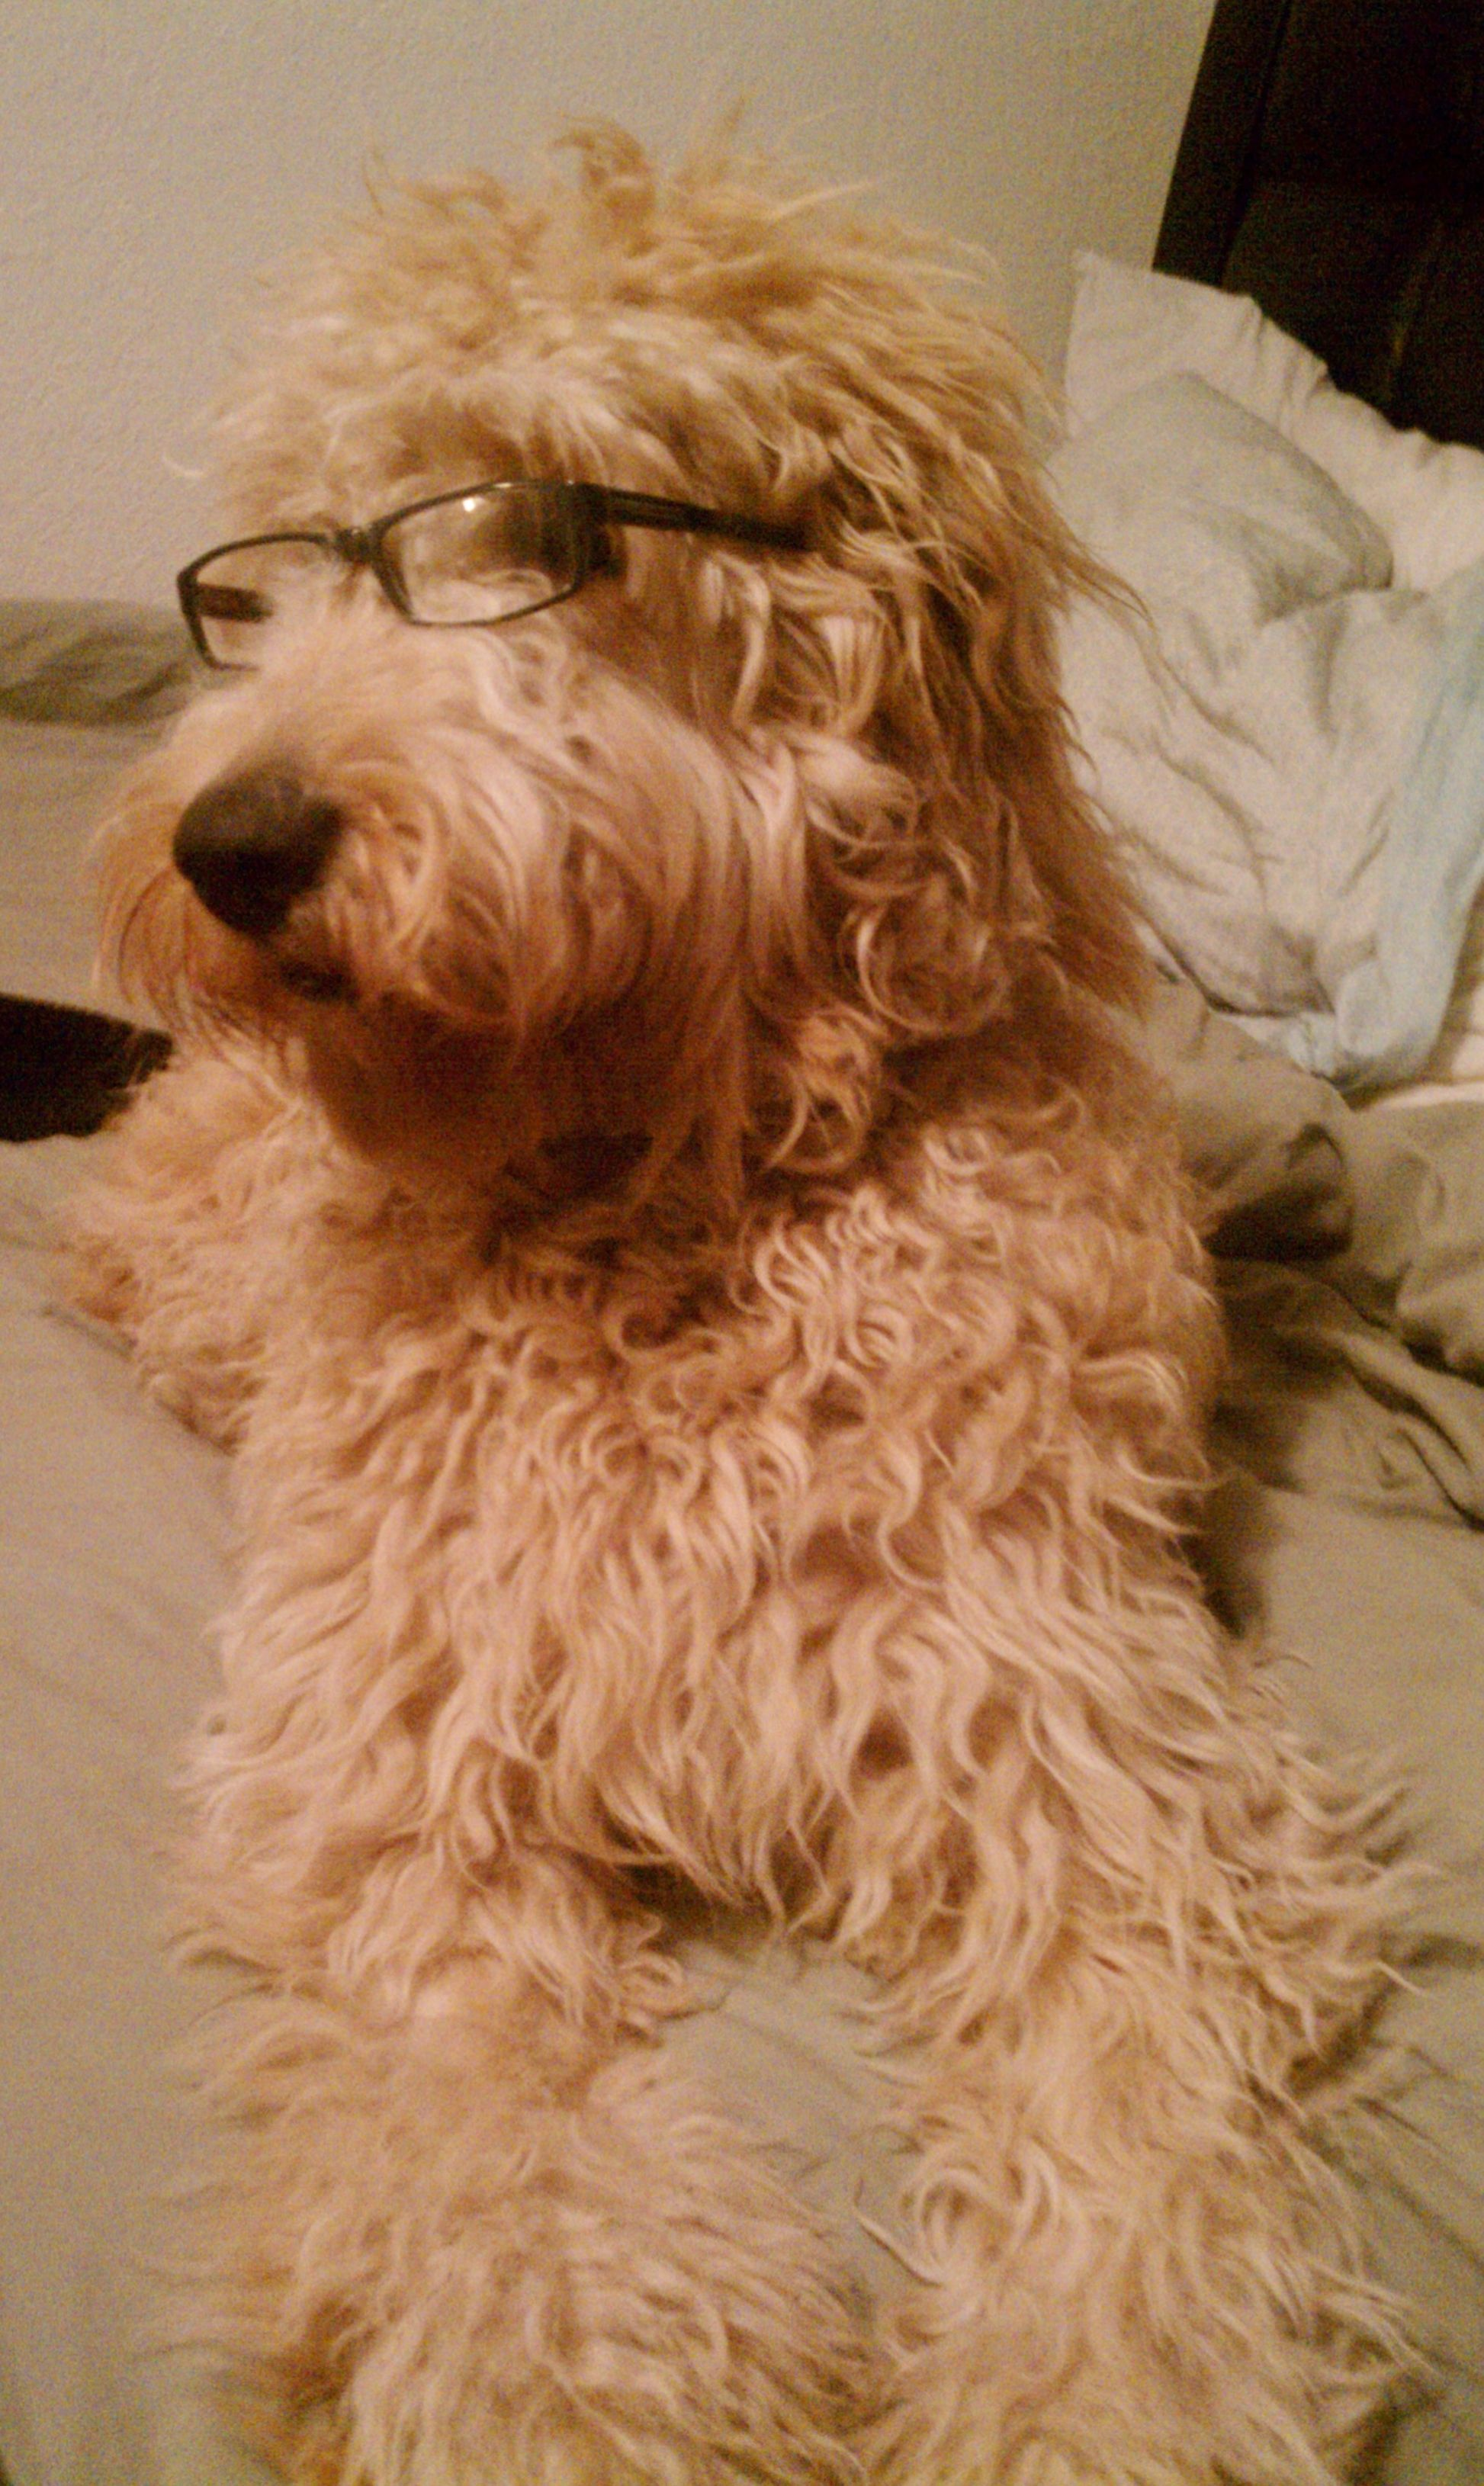 Goldendoodle with glasses